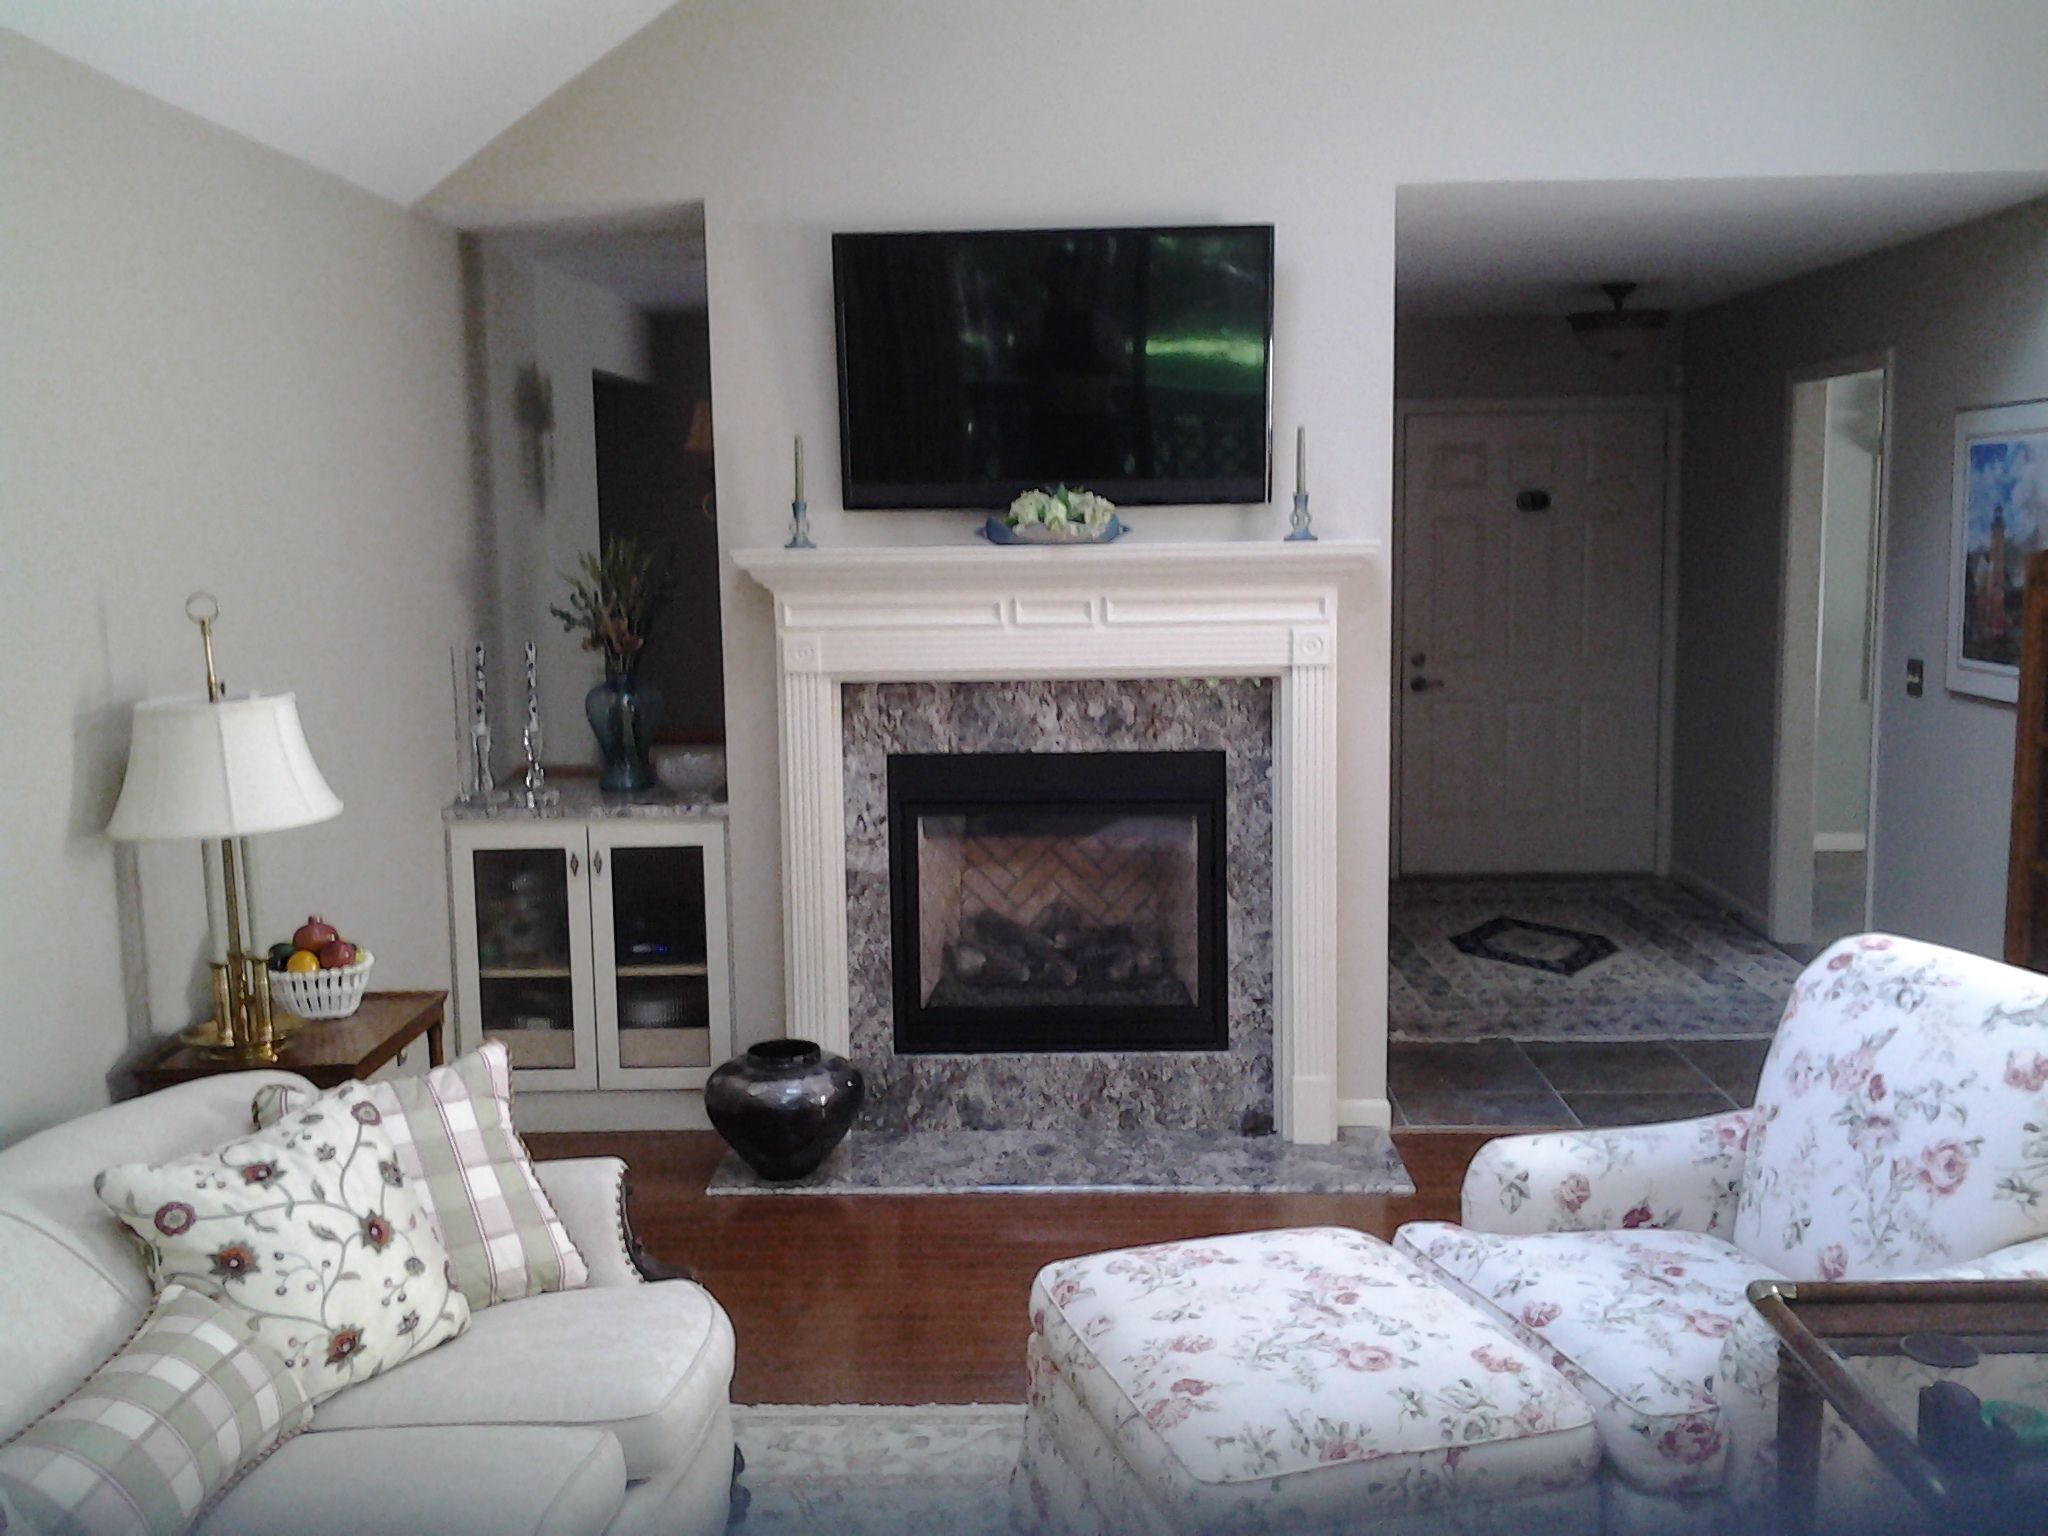 Fireplace remodel project by DeHaan Remodeling Specialists ...